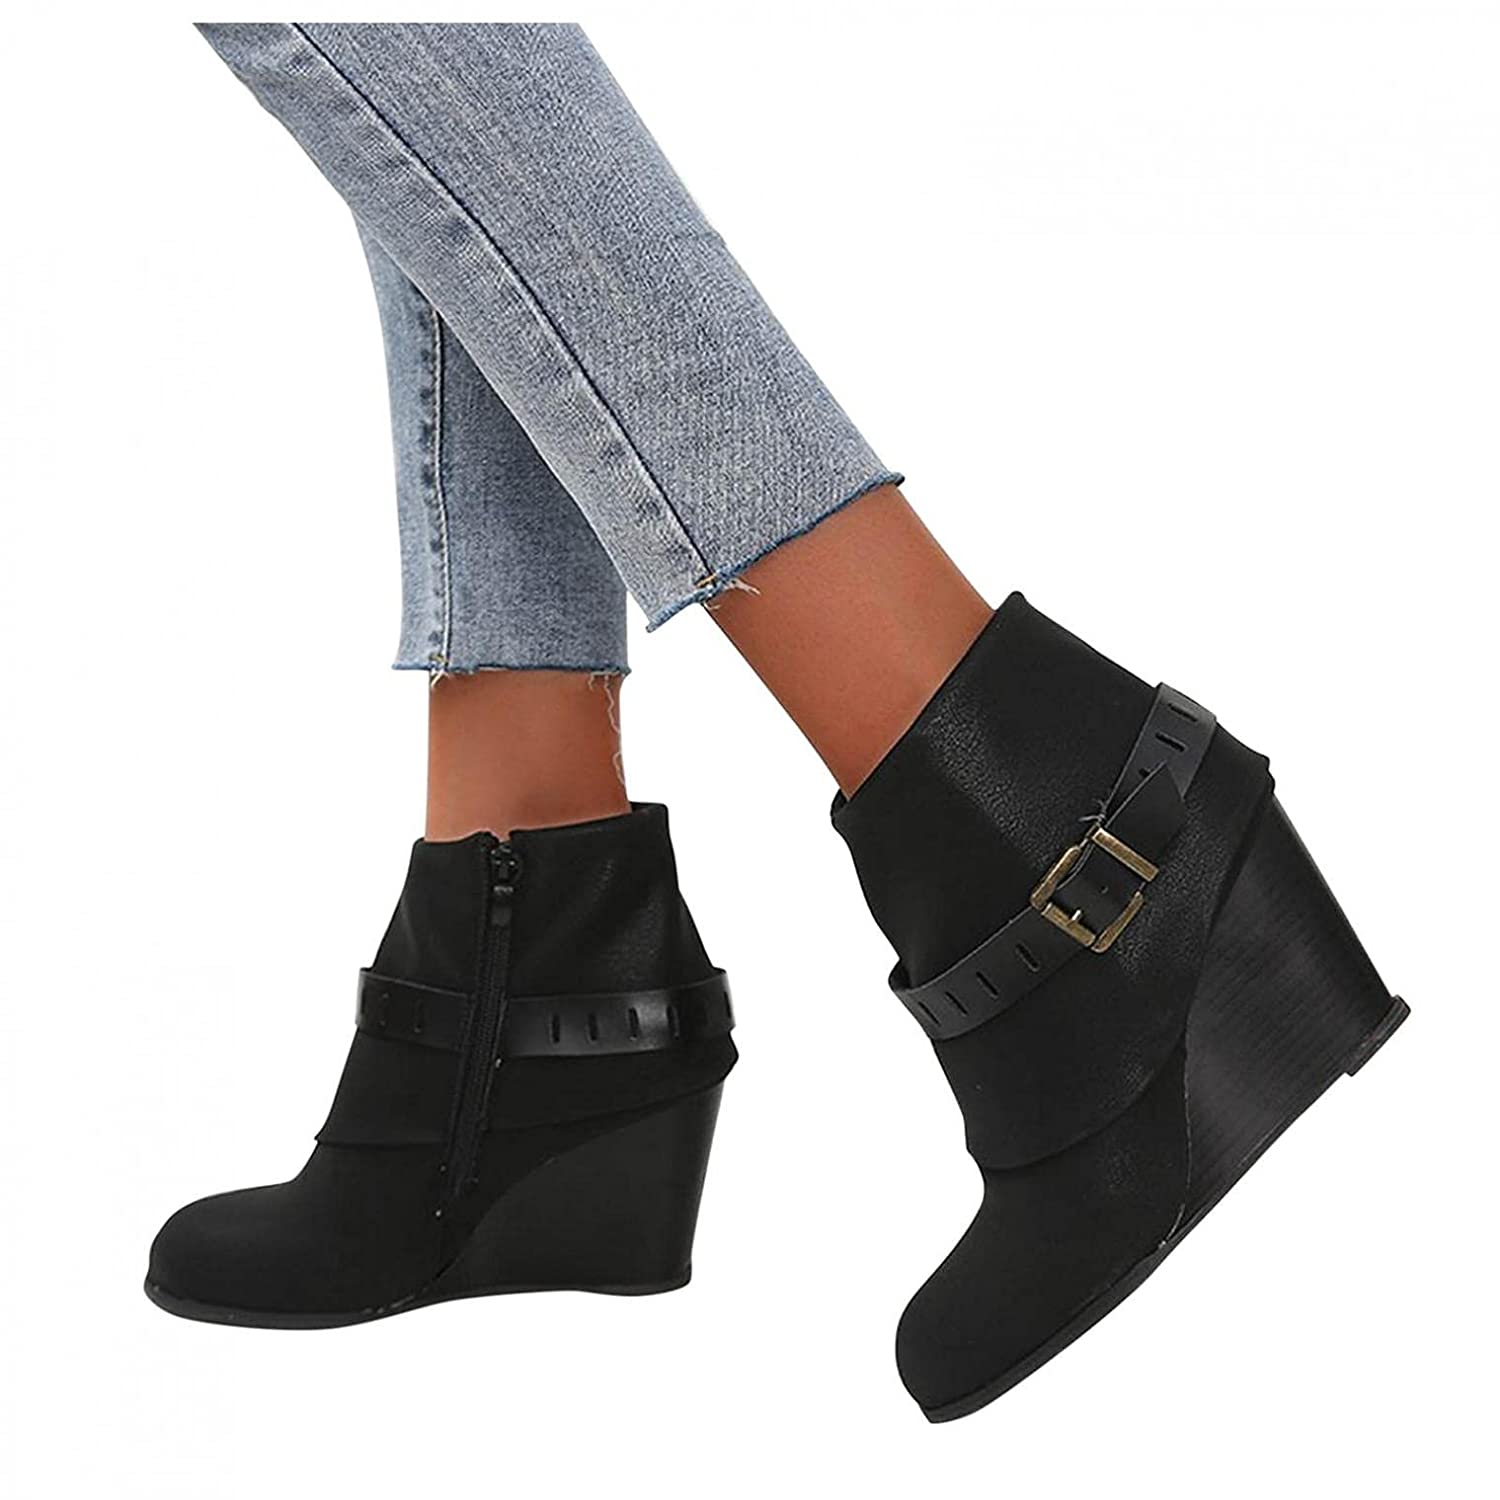 famous Reokoou Boots for Women Women's Buckle Max 79% OFF Round Toe Leather Strap